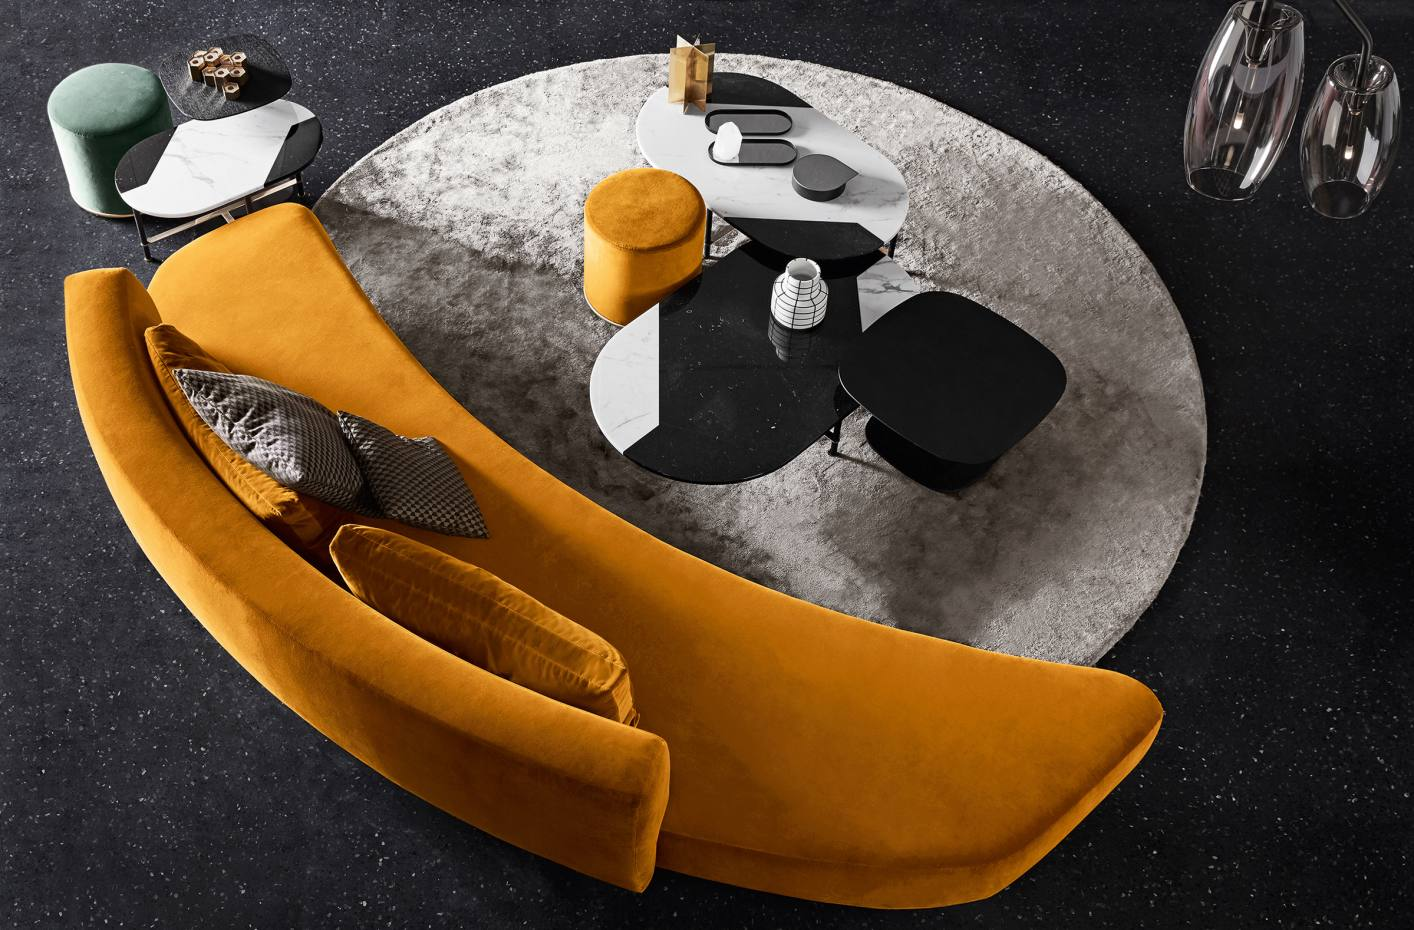 Massimo Castagna for Gallotti & Radice velvet and wood Audrey sofa, from £7,280